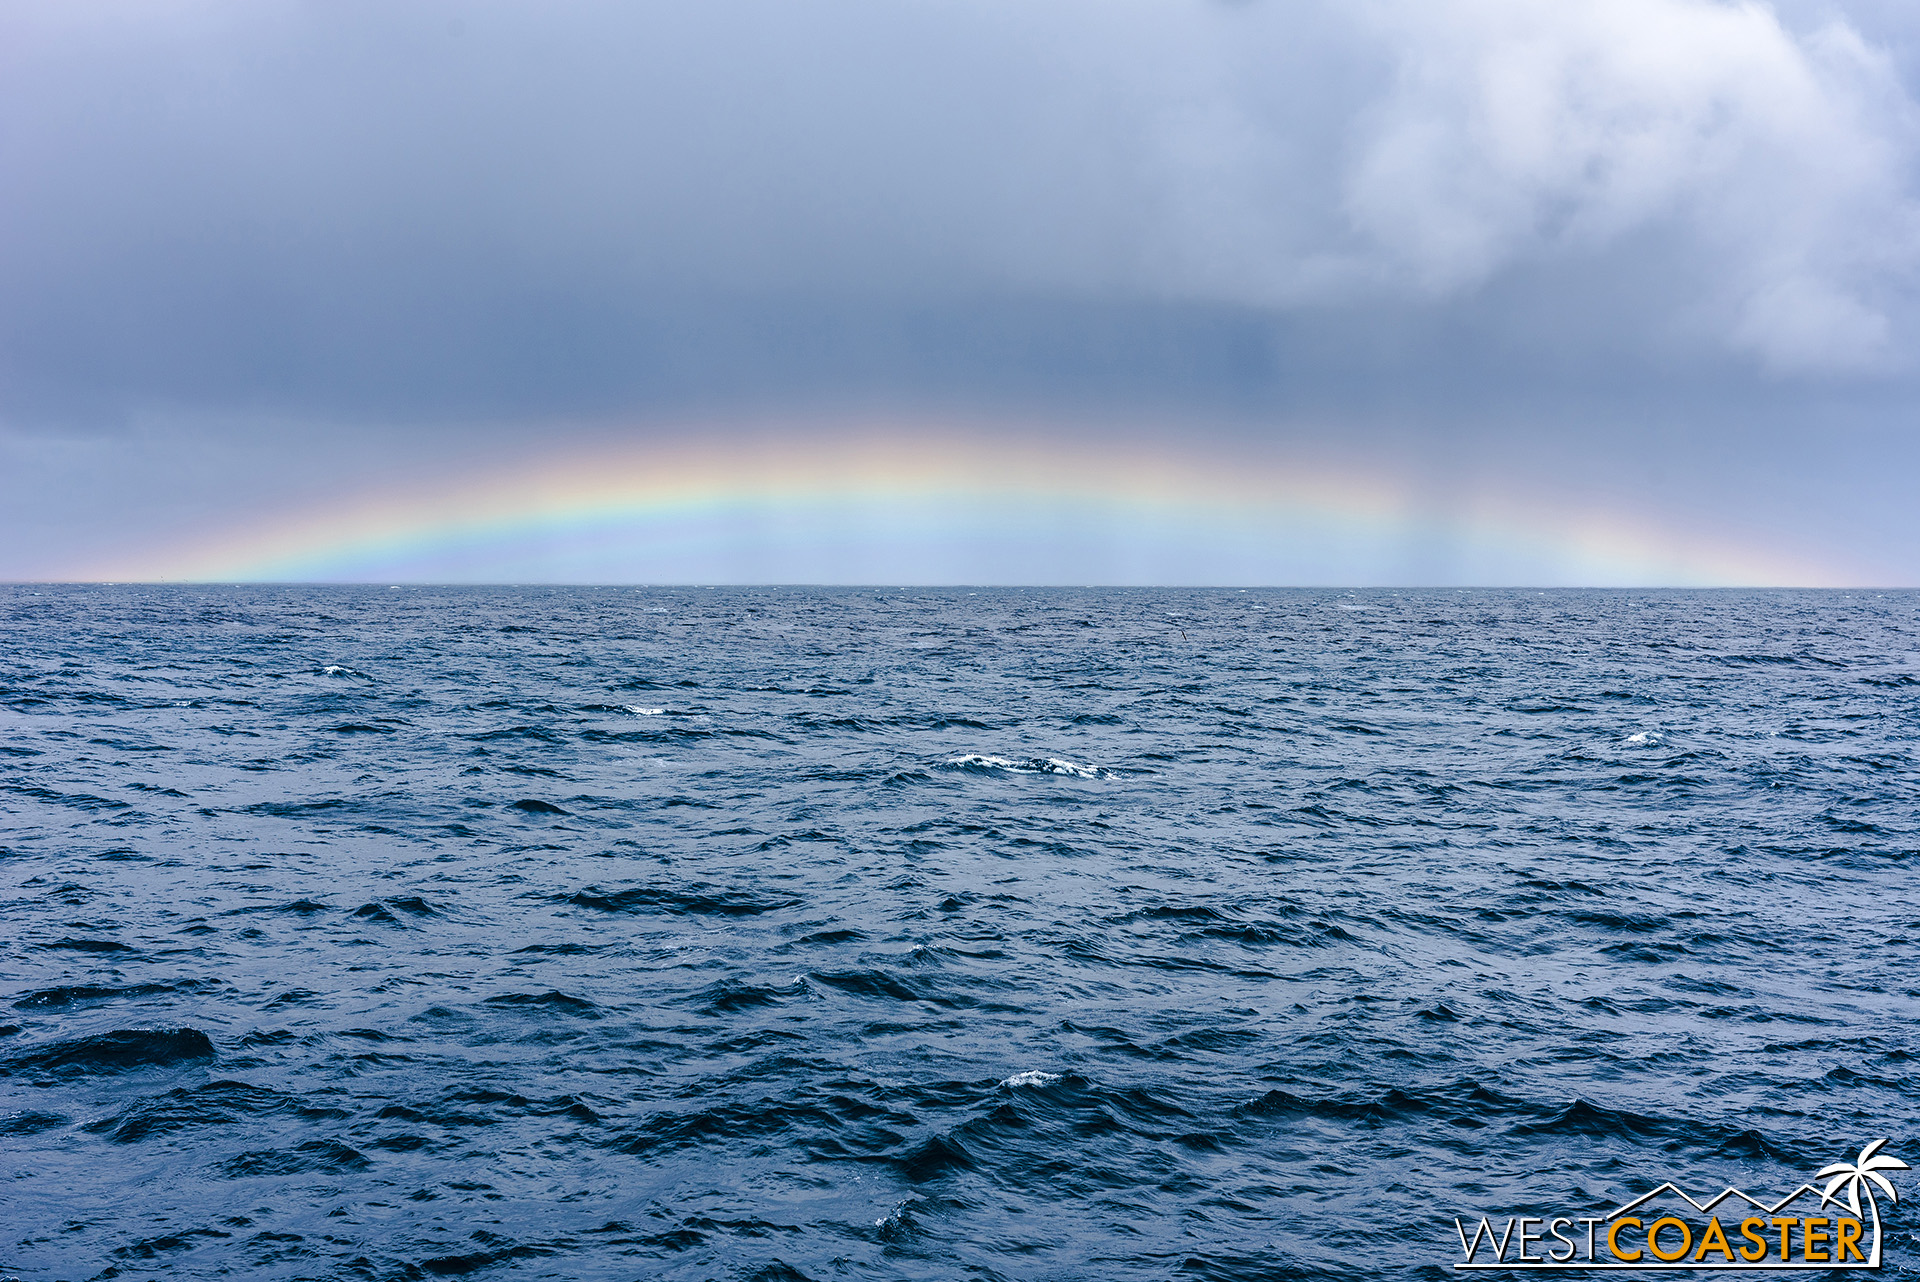 A rainbow at sea—what an amazing sight!